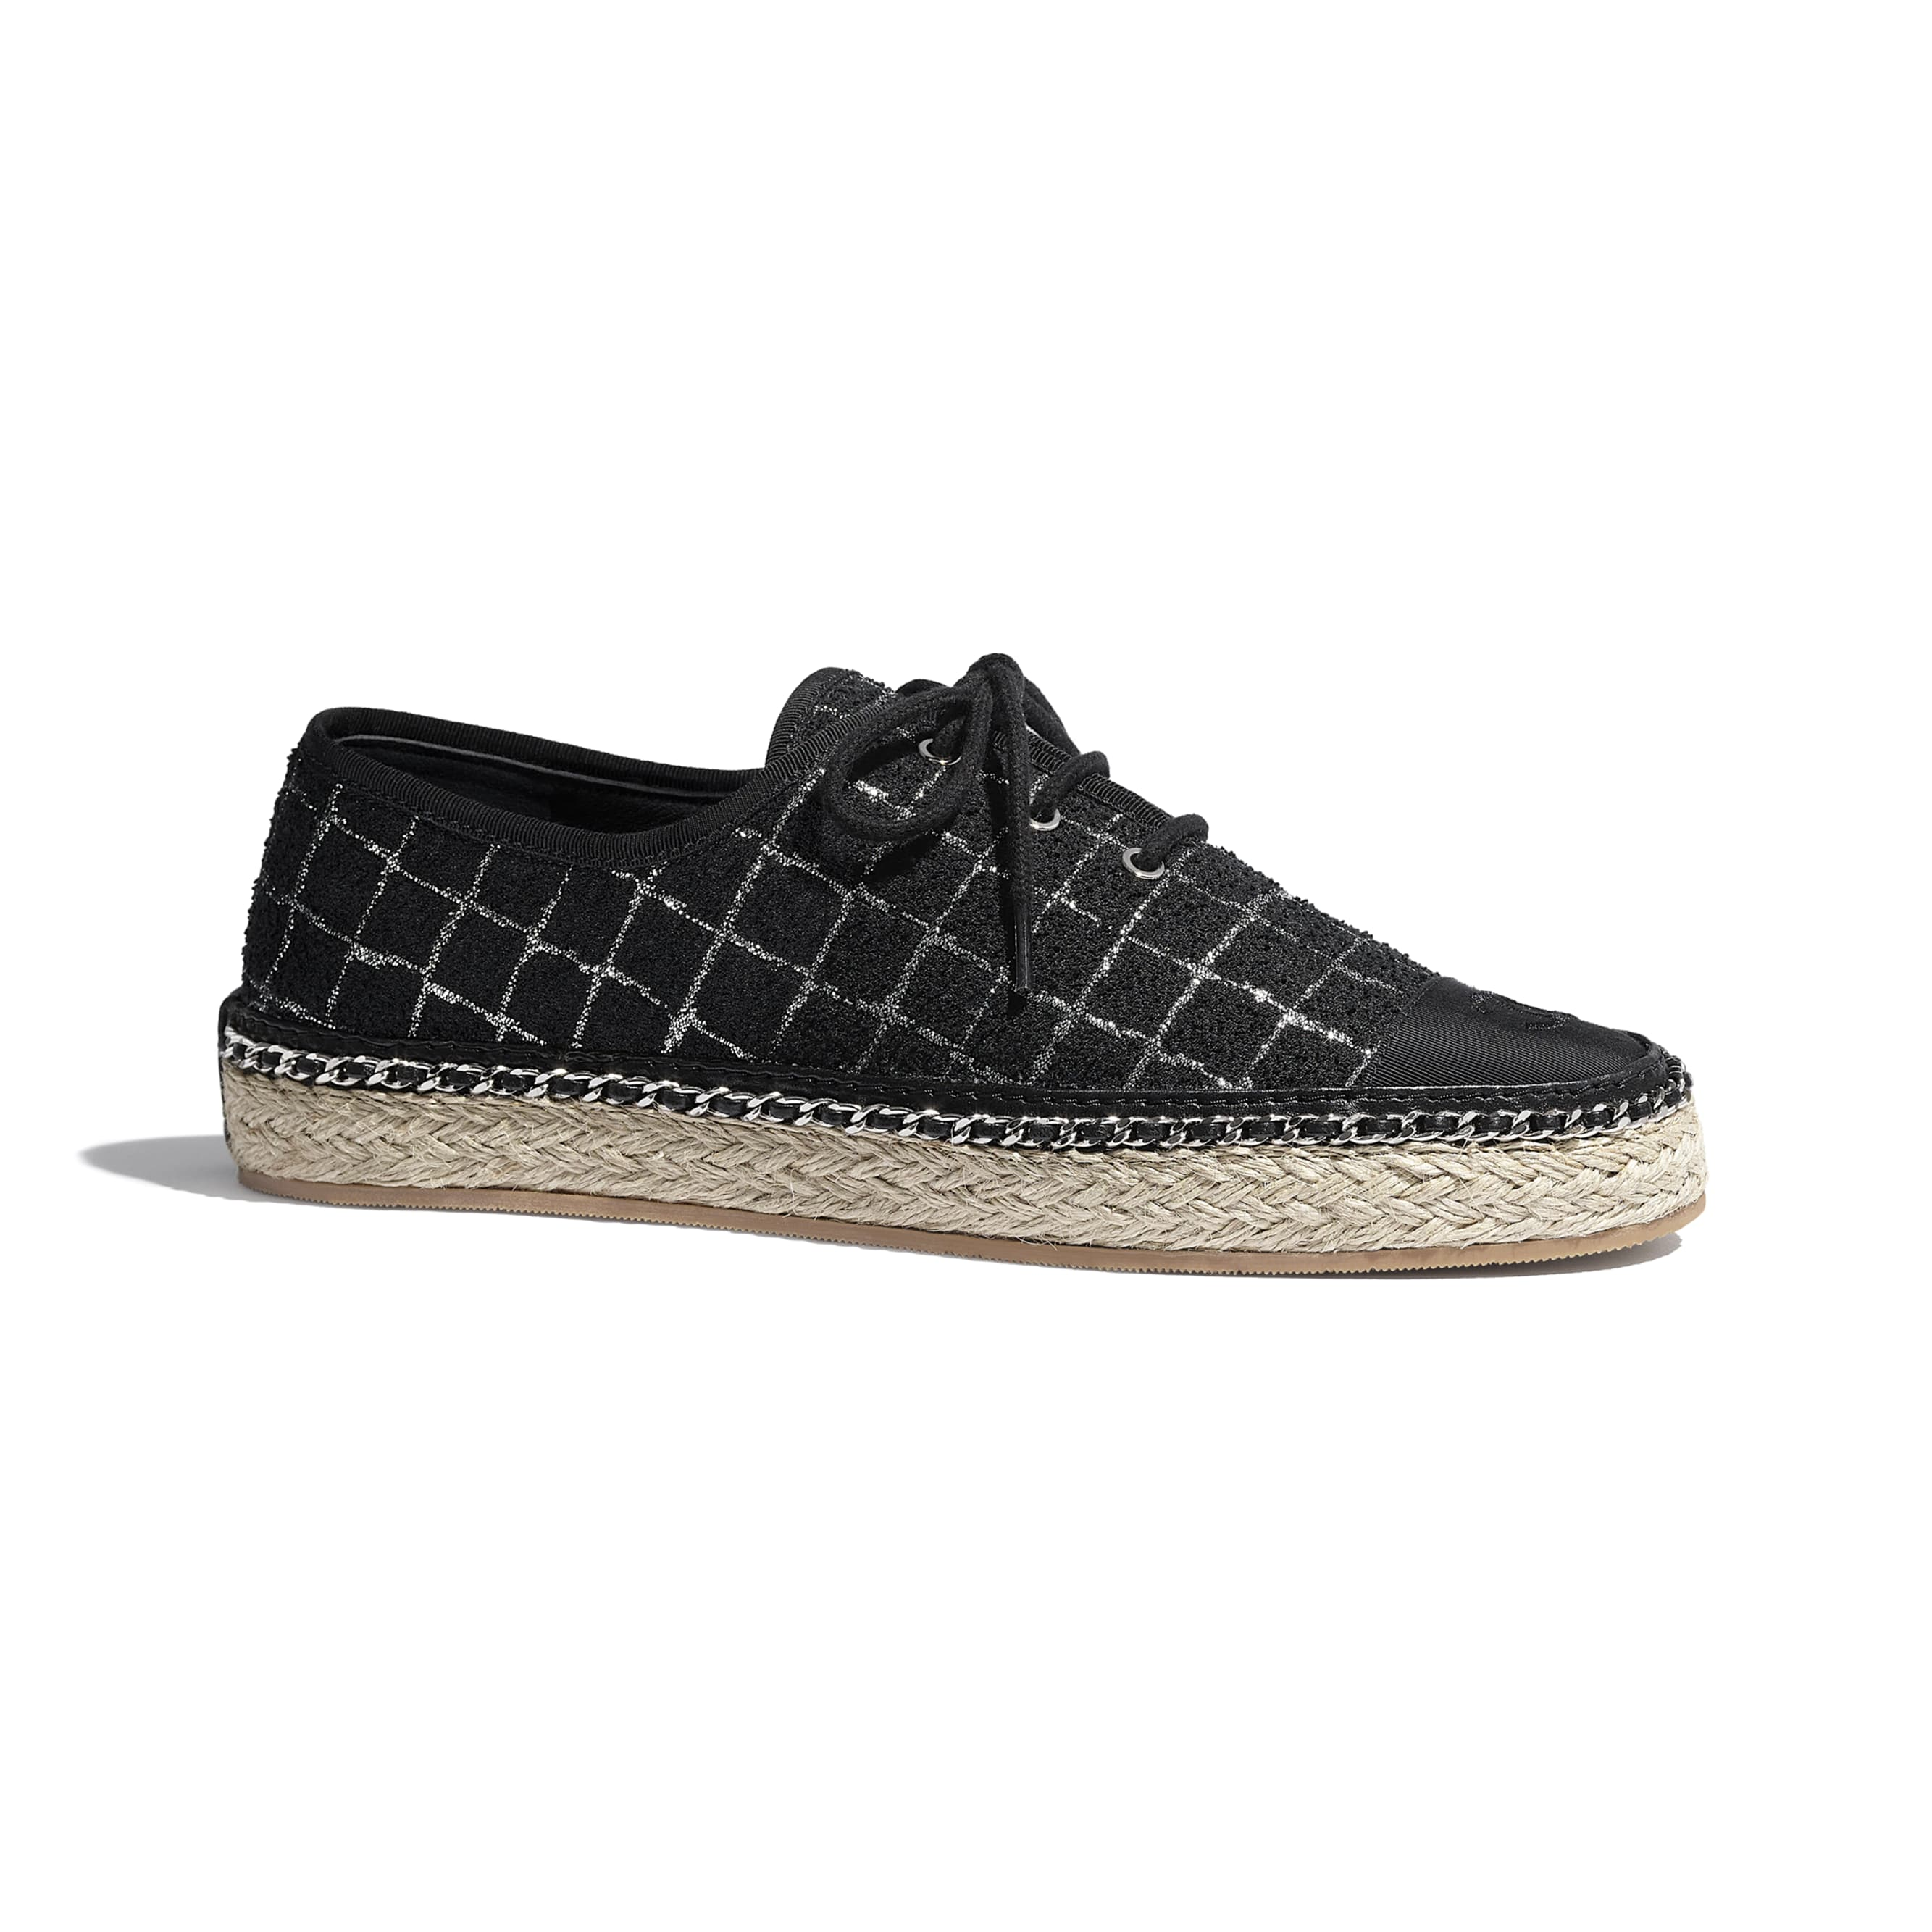 Lace-Ups - Black & Silver - Tweed & Grosgrain - CHANEL - Default view - see standard sized version